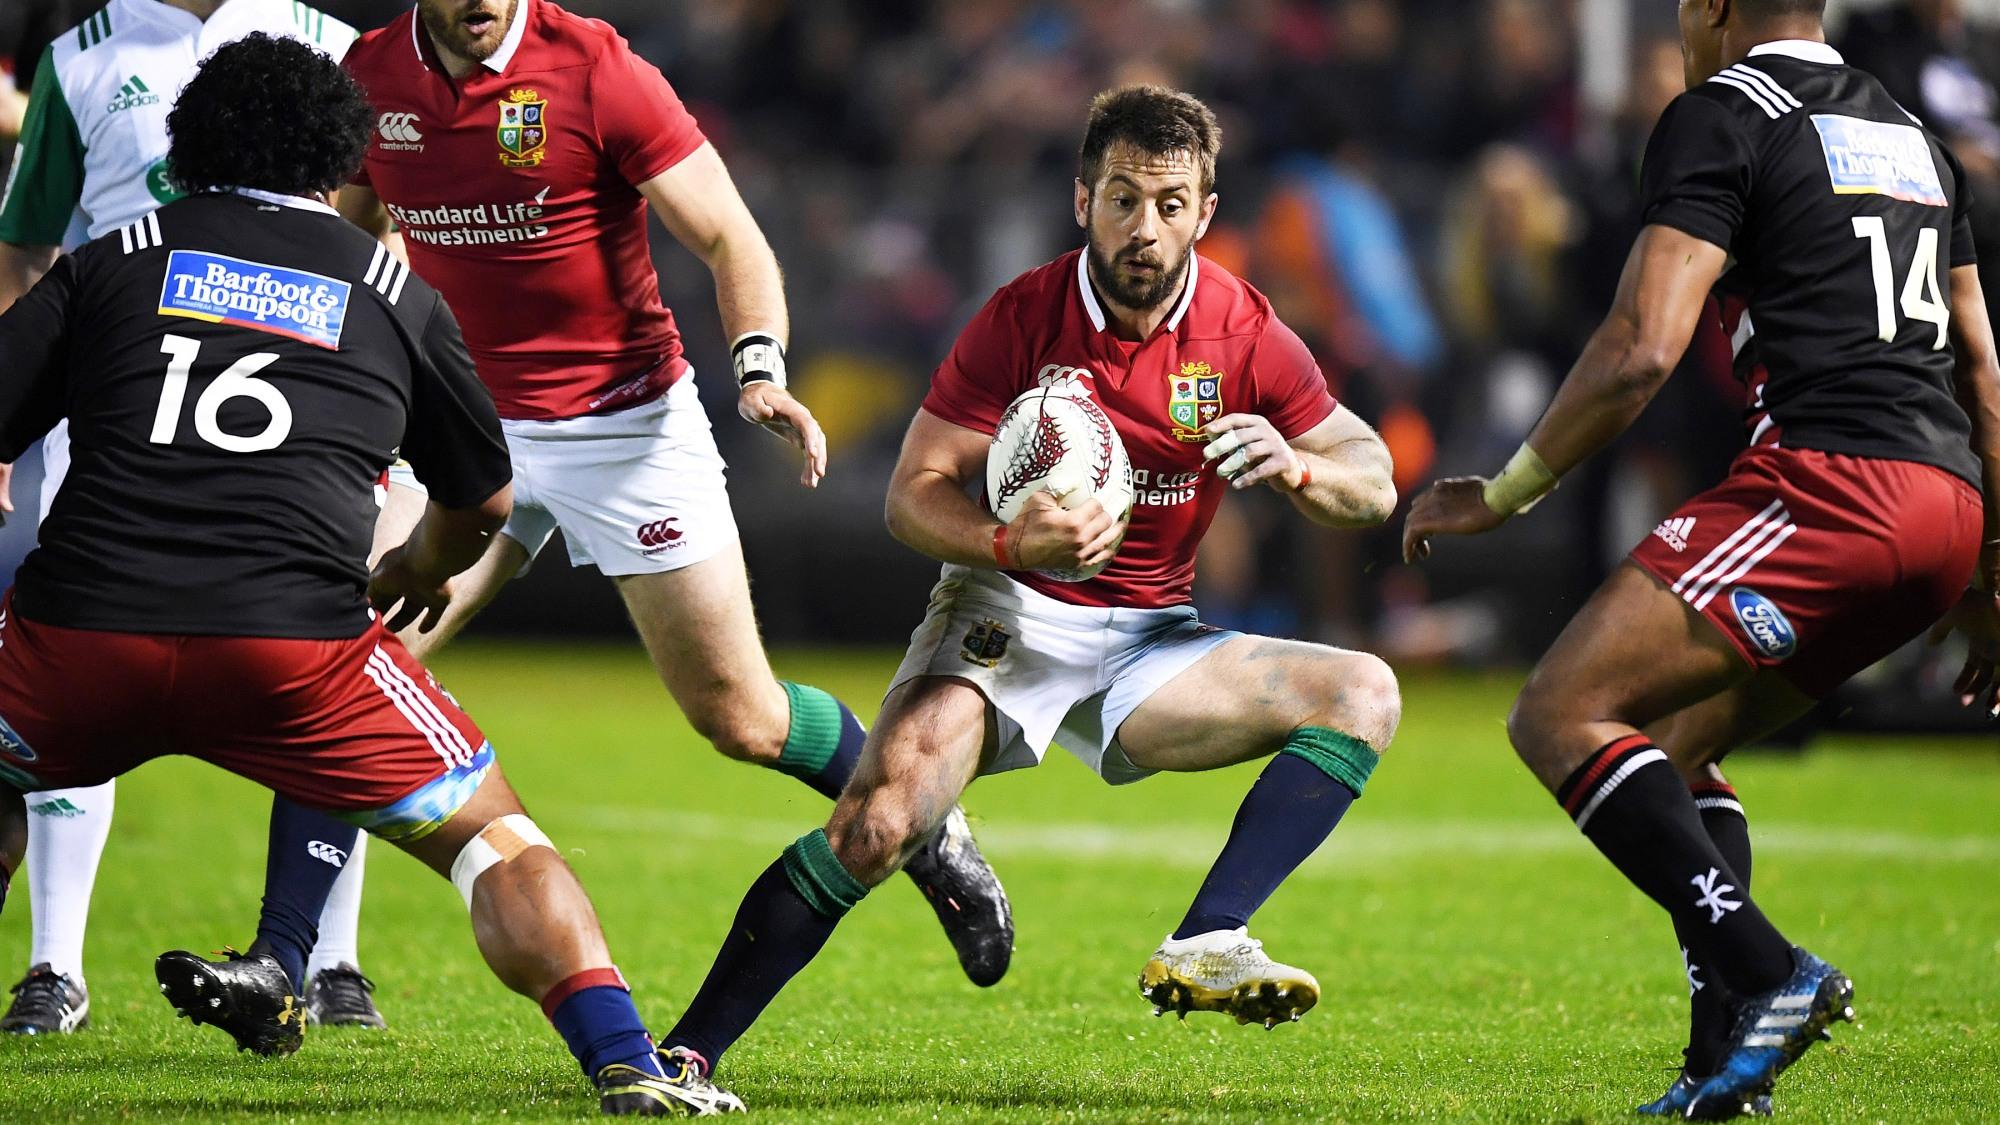 Laidlaw and Russell team up in half-backs